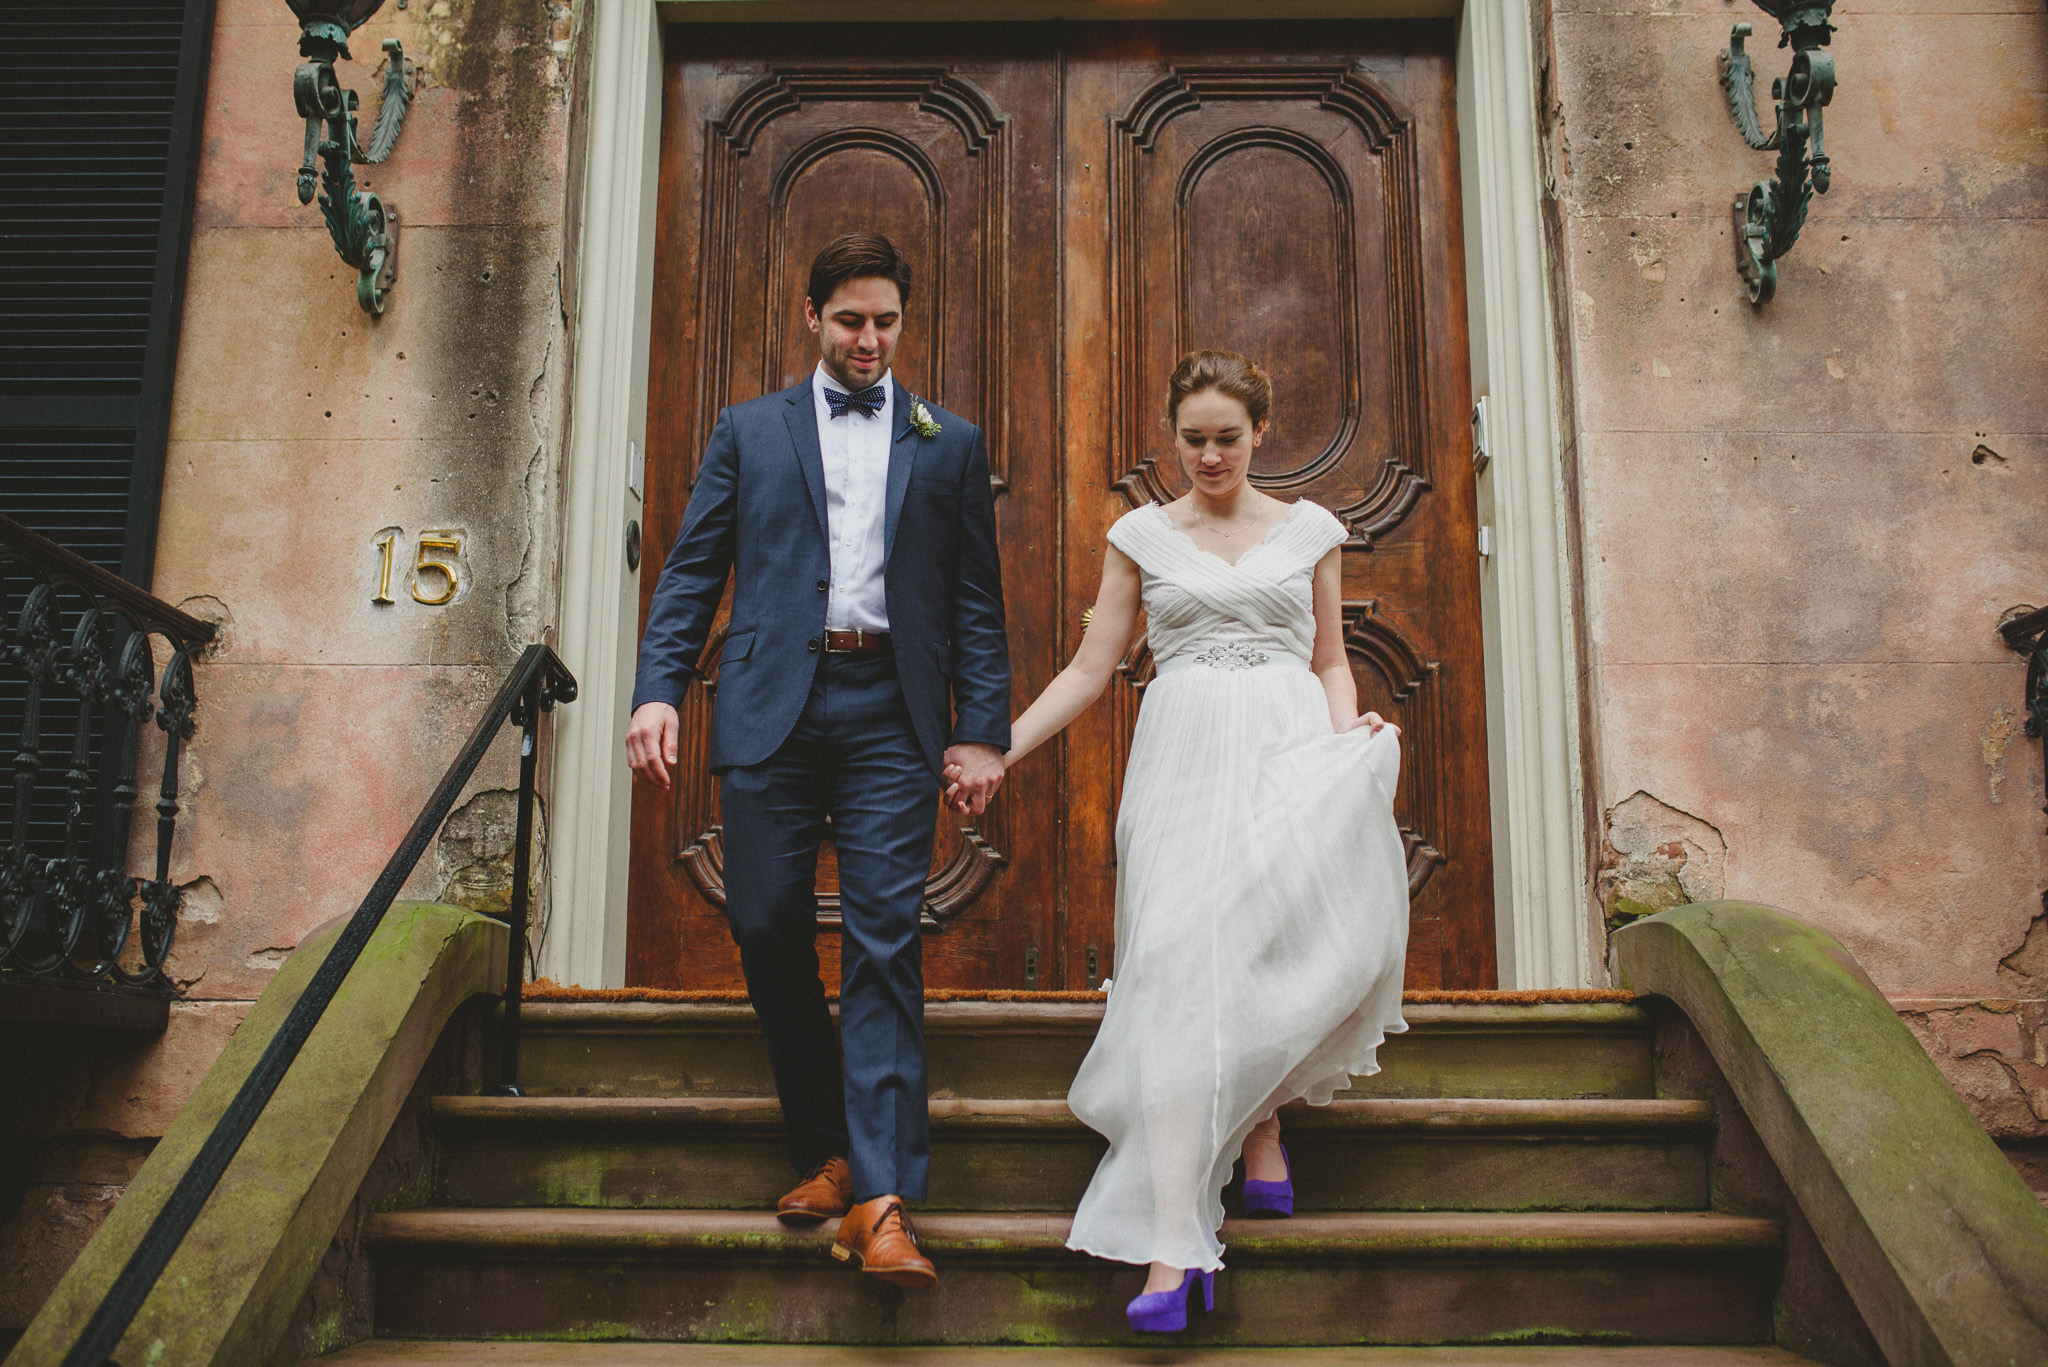 Savannah Wedding Photography - Bride and Groom on stairs